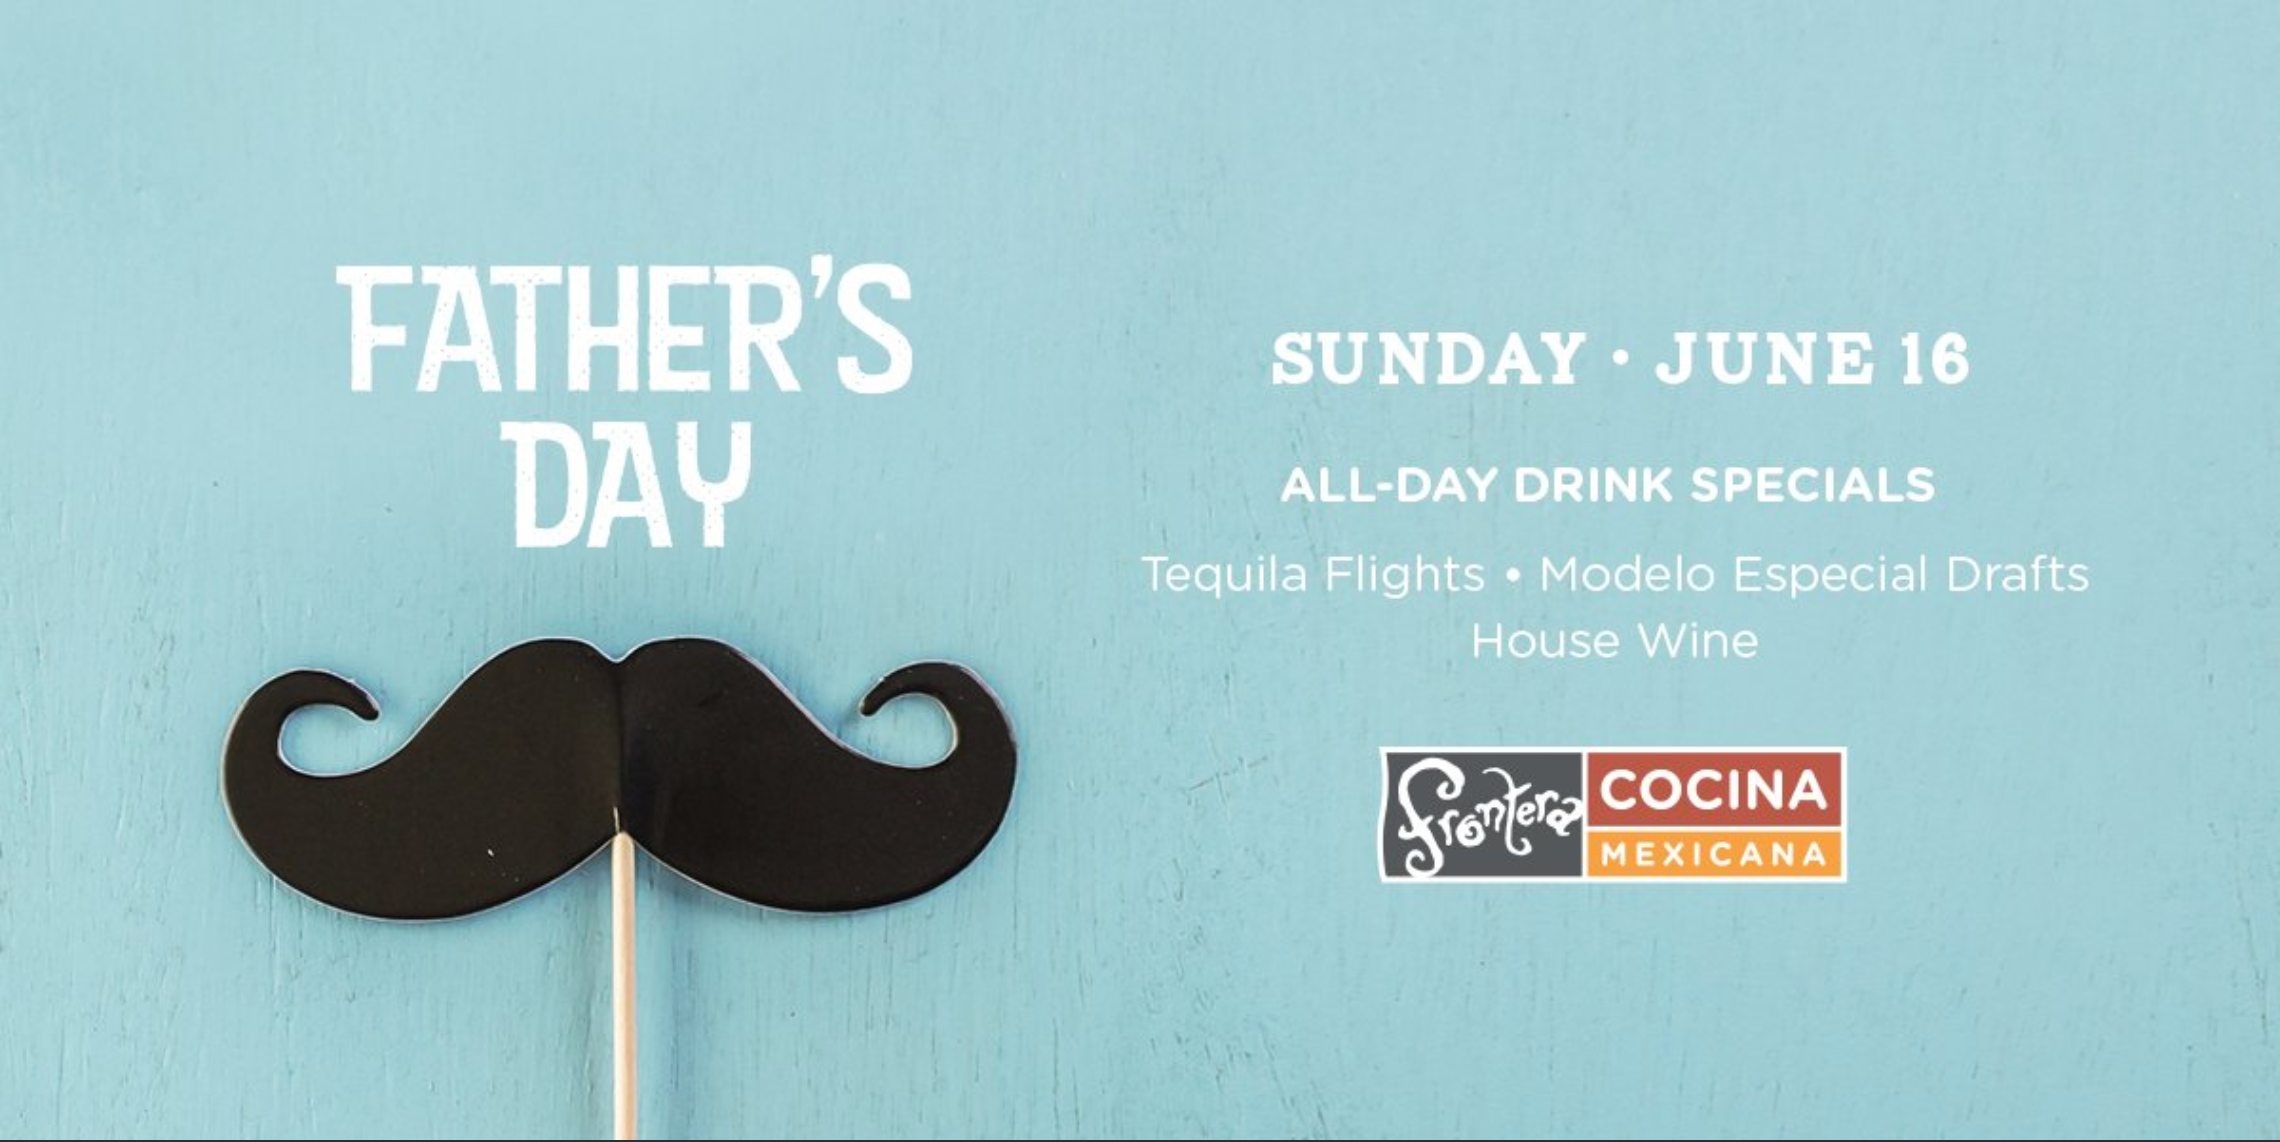 FATHERS DAY RESTAURANT SPECIALS 2019